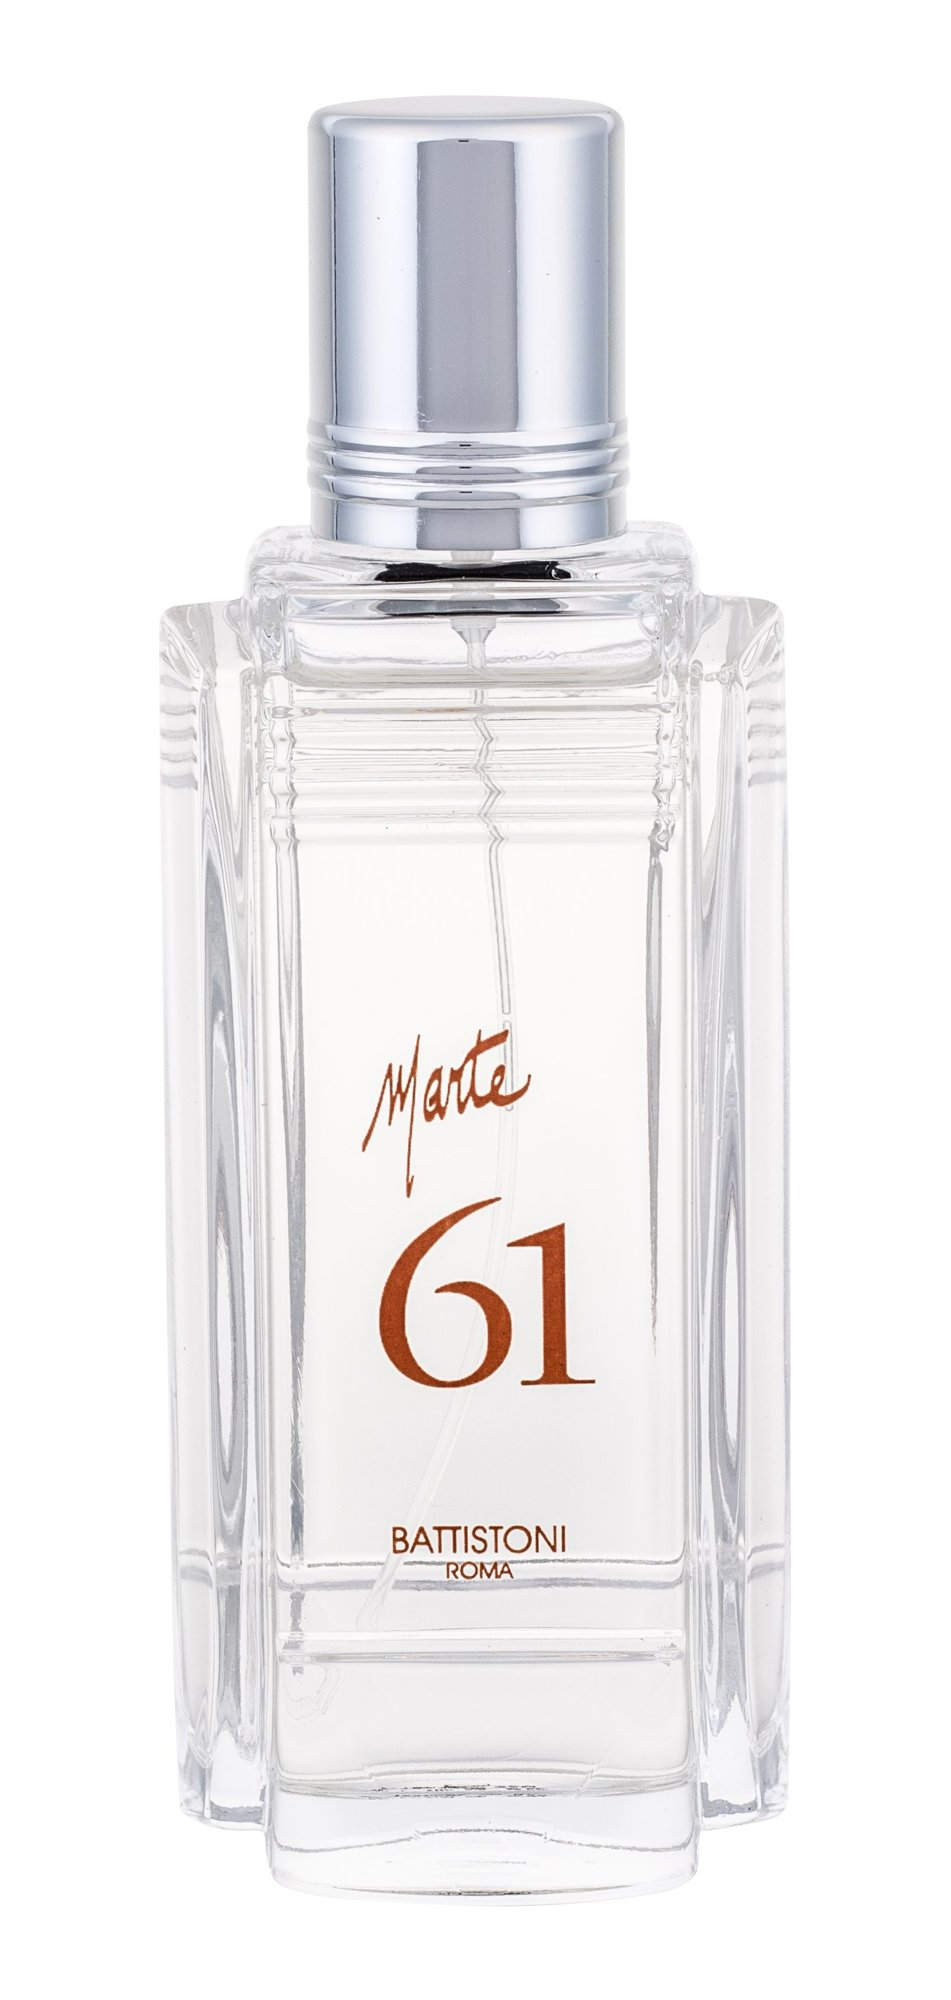 Battistoni Roma Marte 61 EDT 100ml